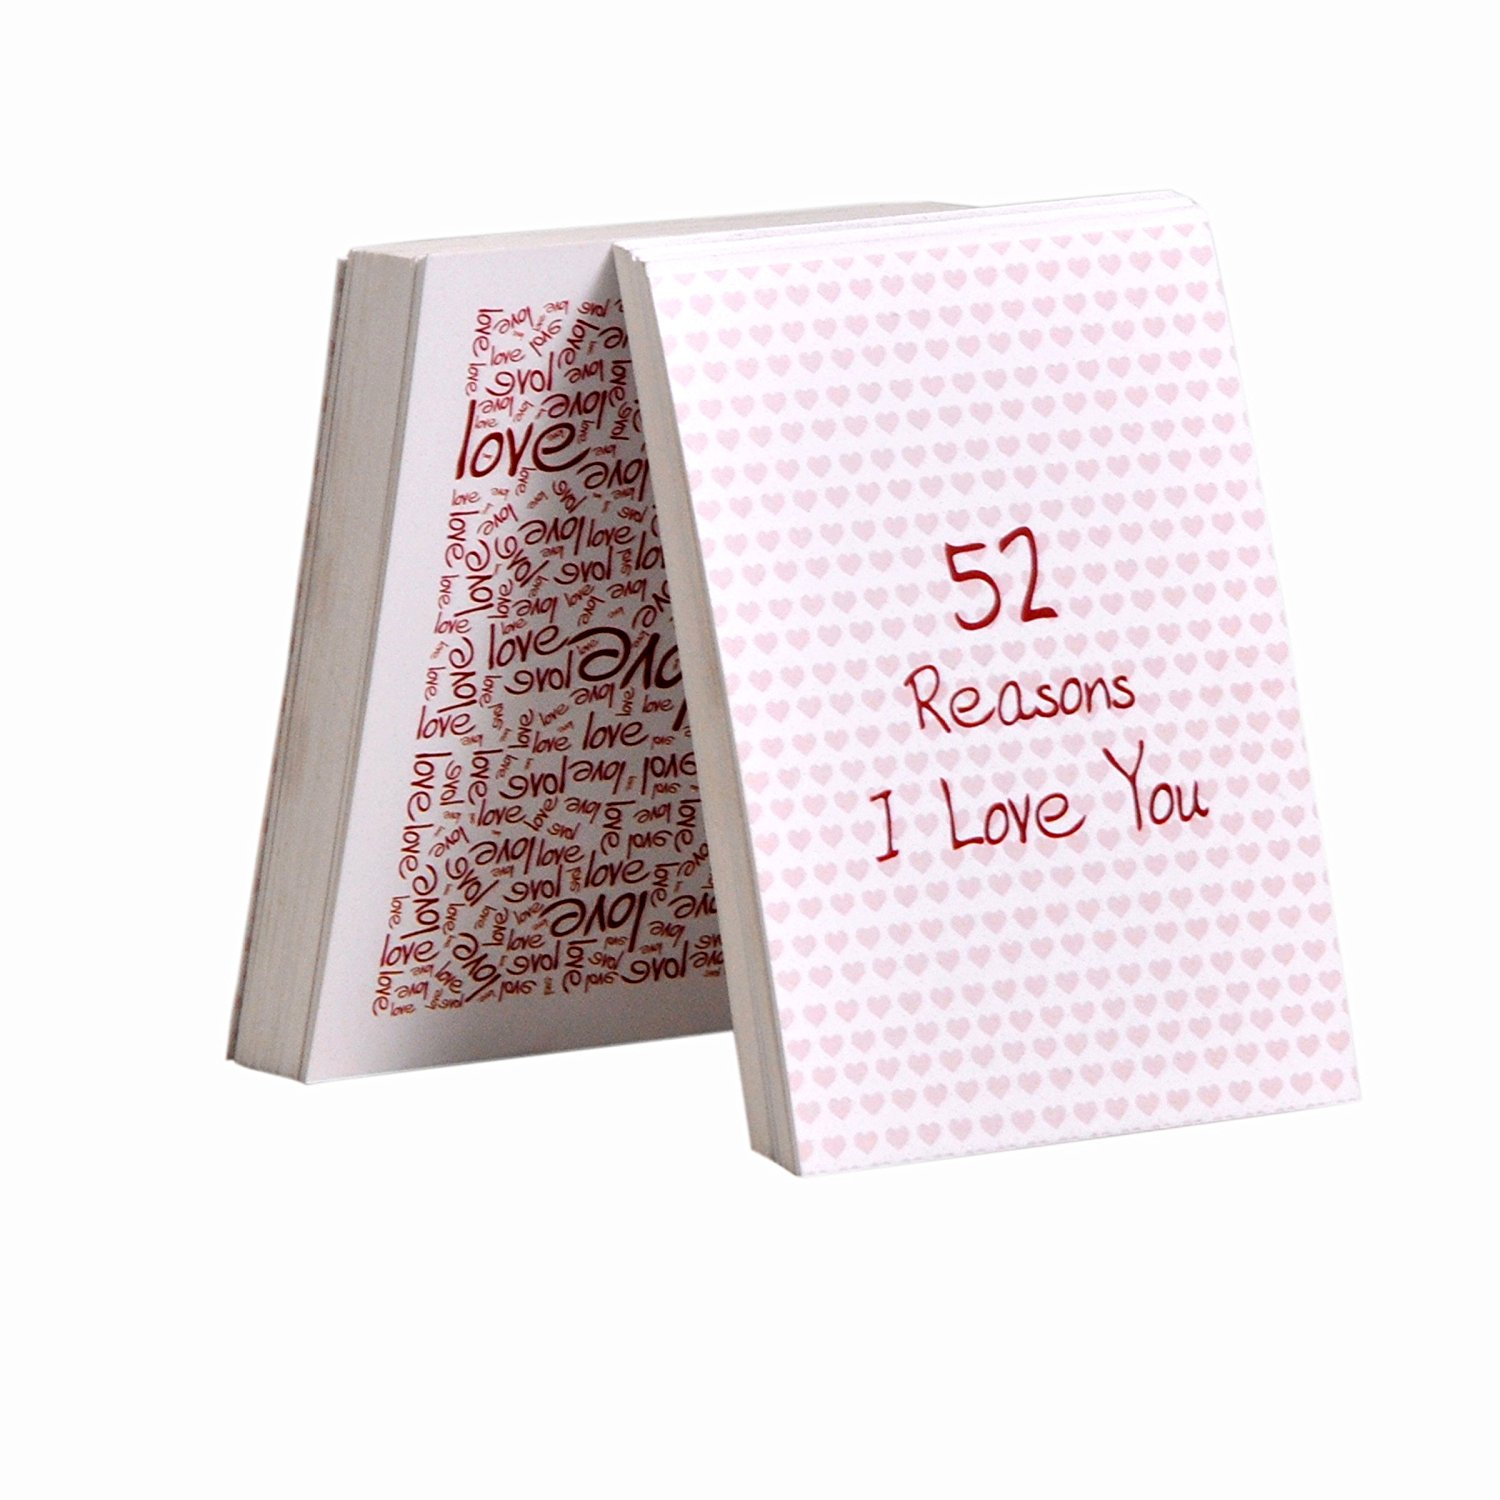 birthday greeting cards for husband online shopping ; 81wV-o6XI1L